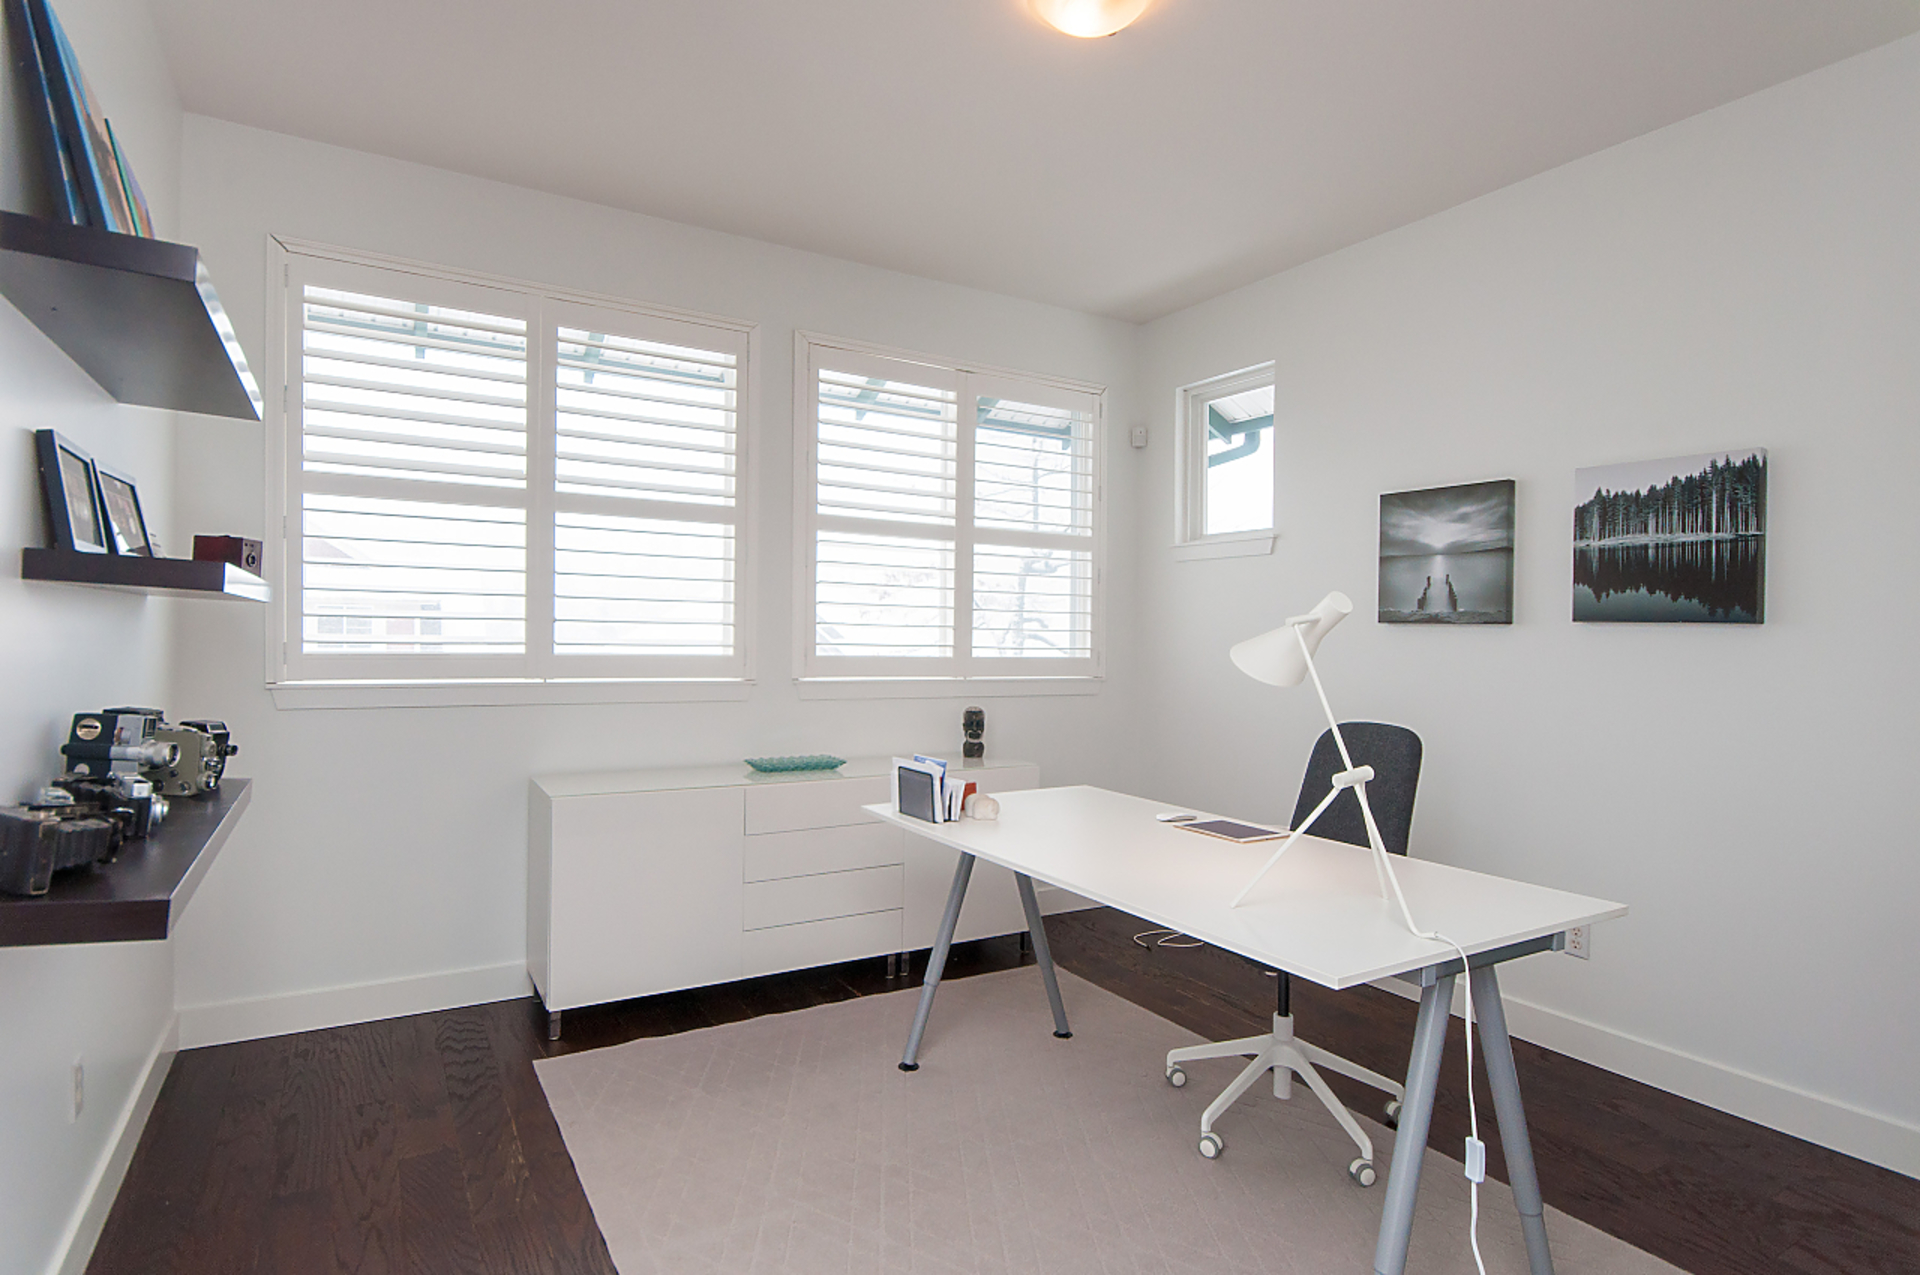 023 at 31 Greenleaf Drive, Heritage Woods PM, Port Moody